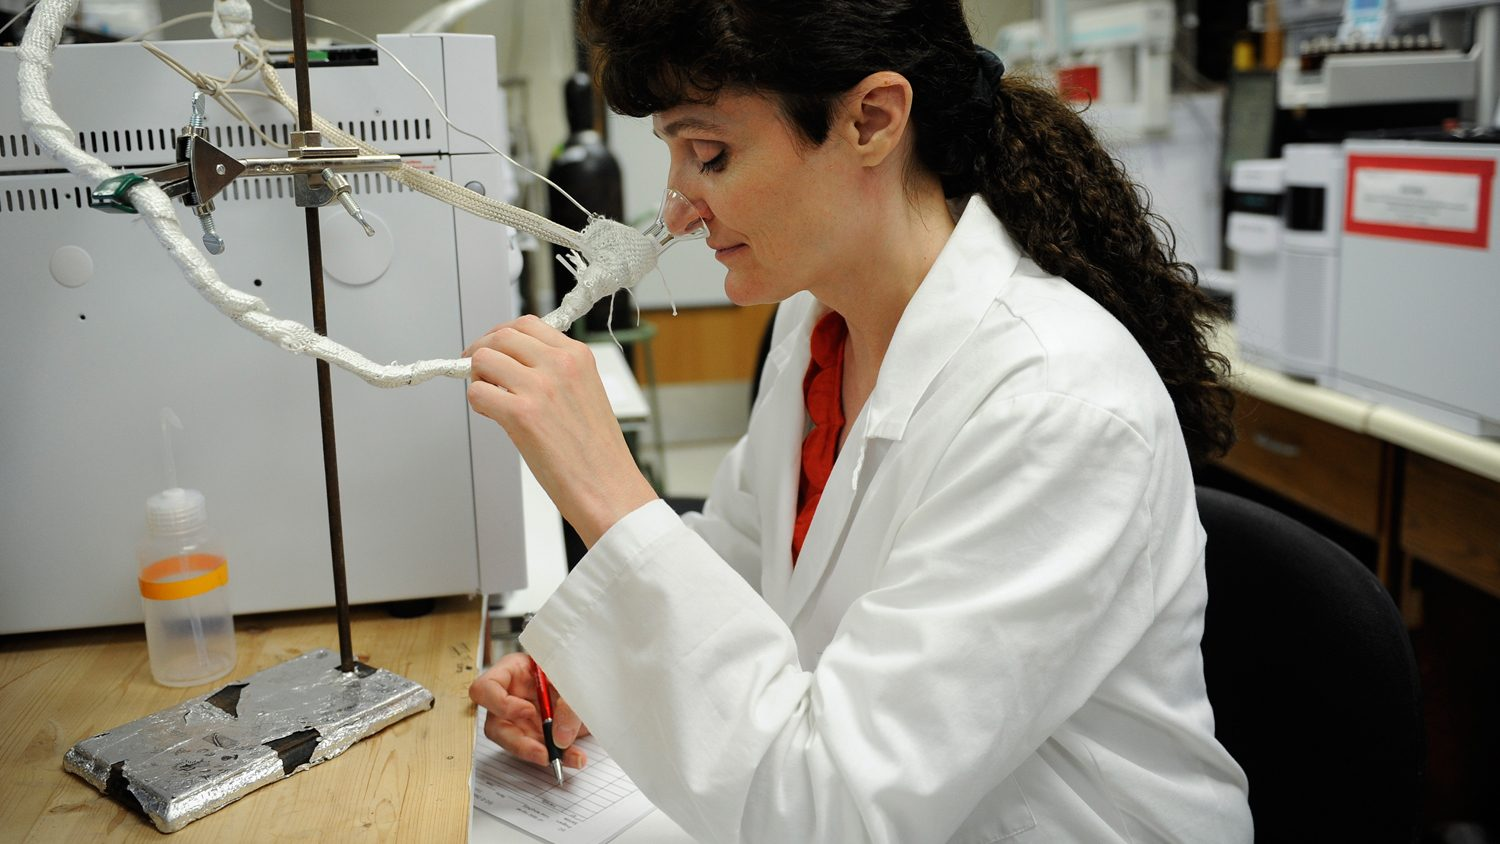 A female researcher conducting experiments in a lab.